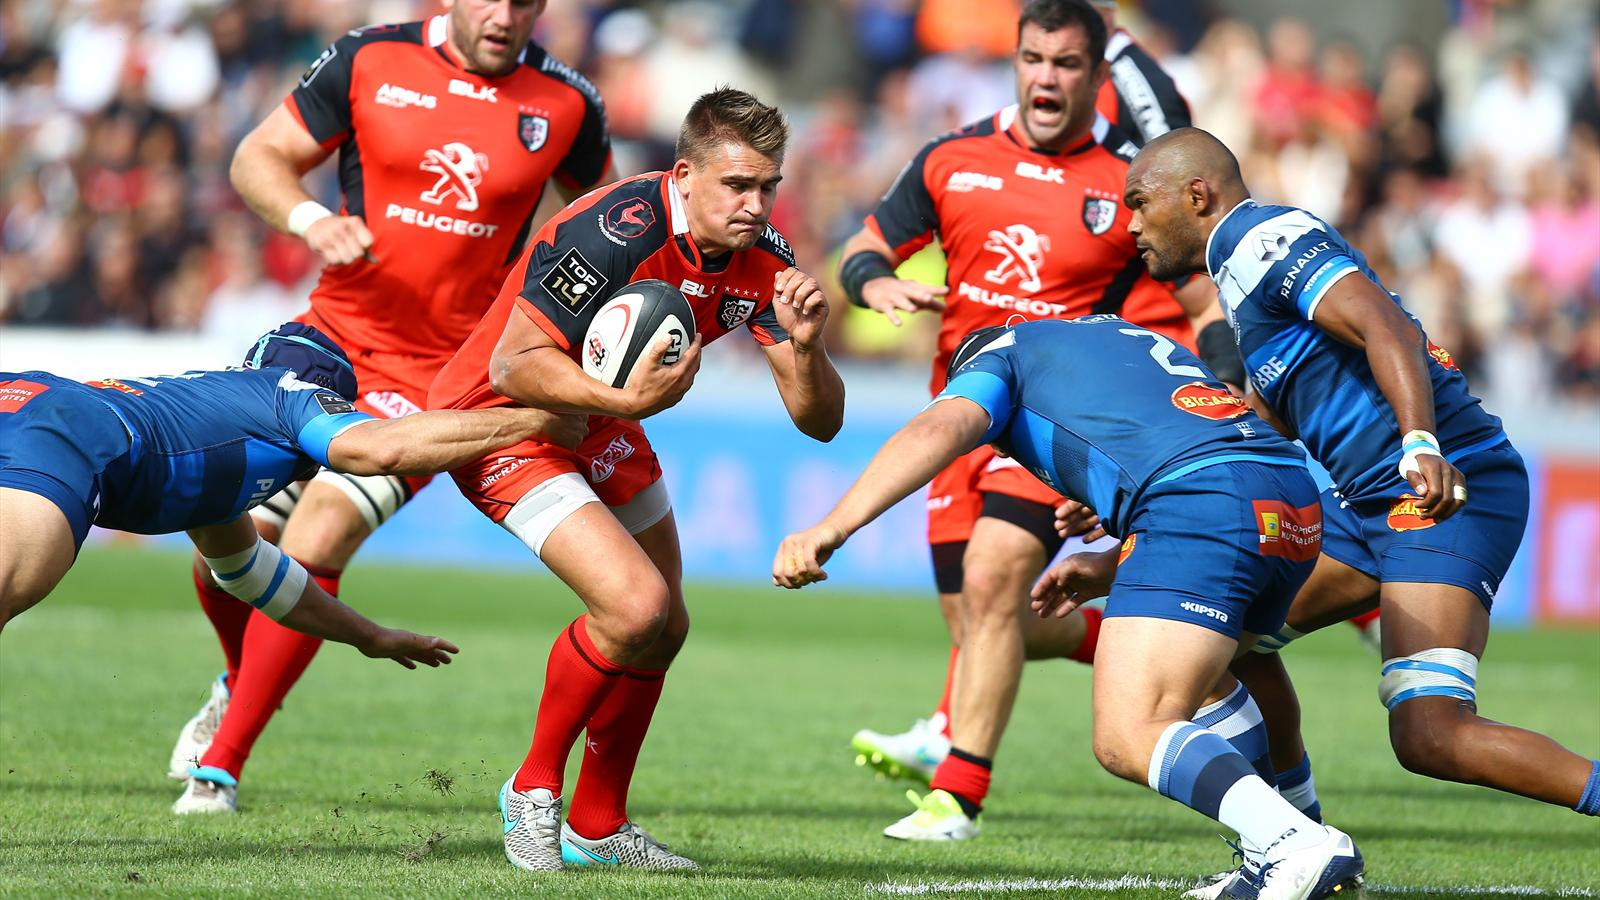 Toby Flood (Toulouse) face à Castres - 5 septembre 2015